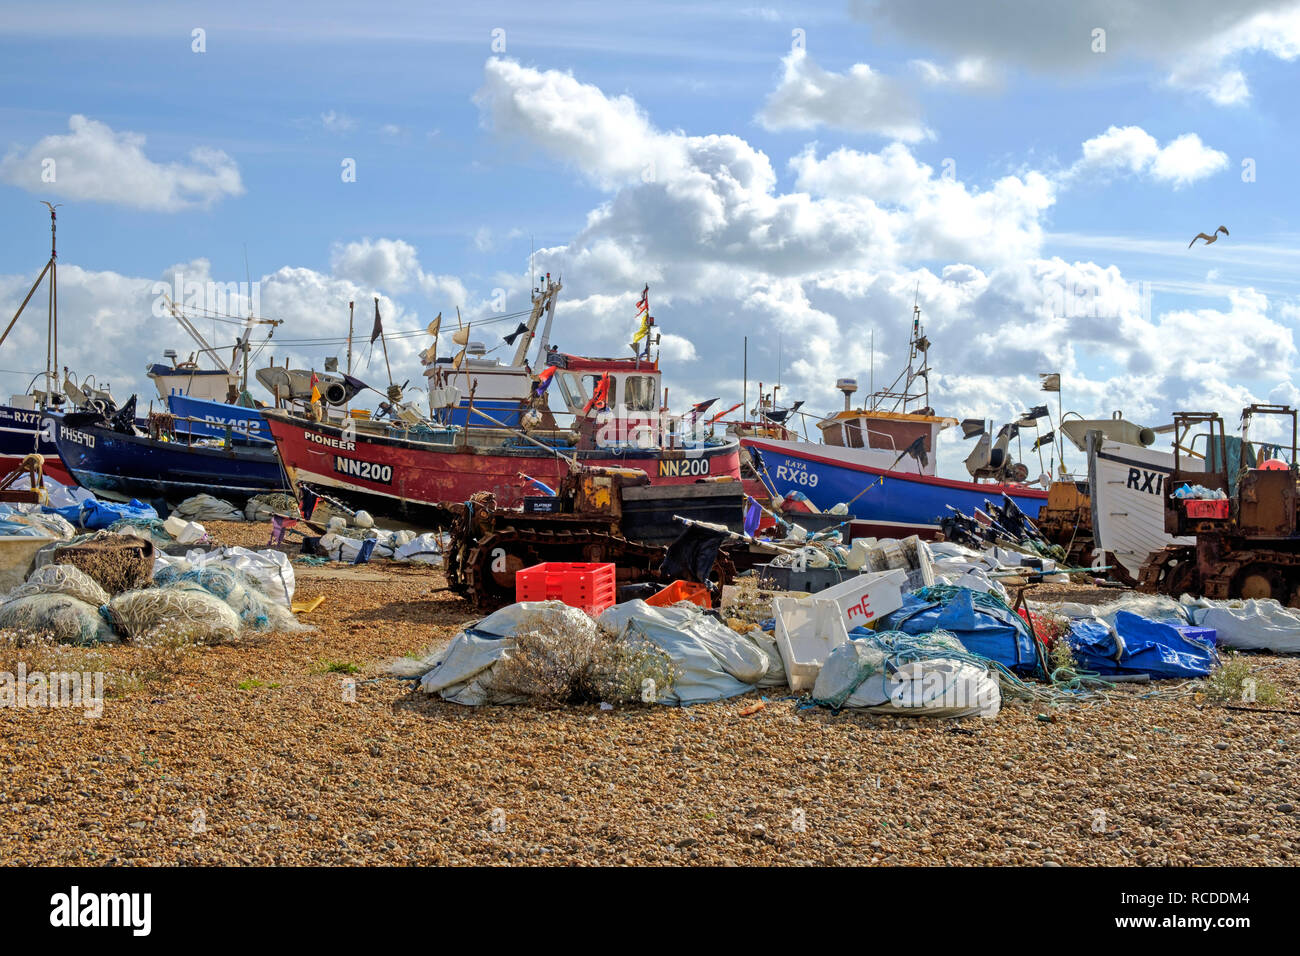 Hastings Old Town Stade fishing boat beach. Hastings has one of the largest beach-launched fishing fleets in Europe Stock Photo